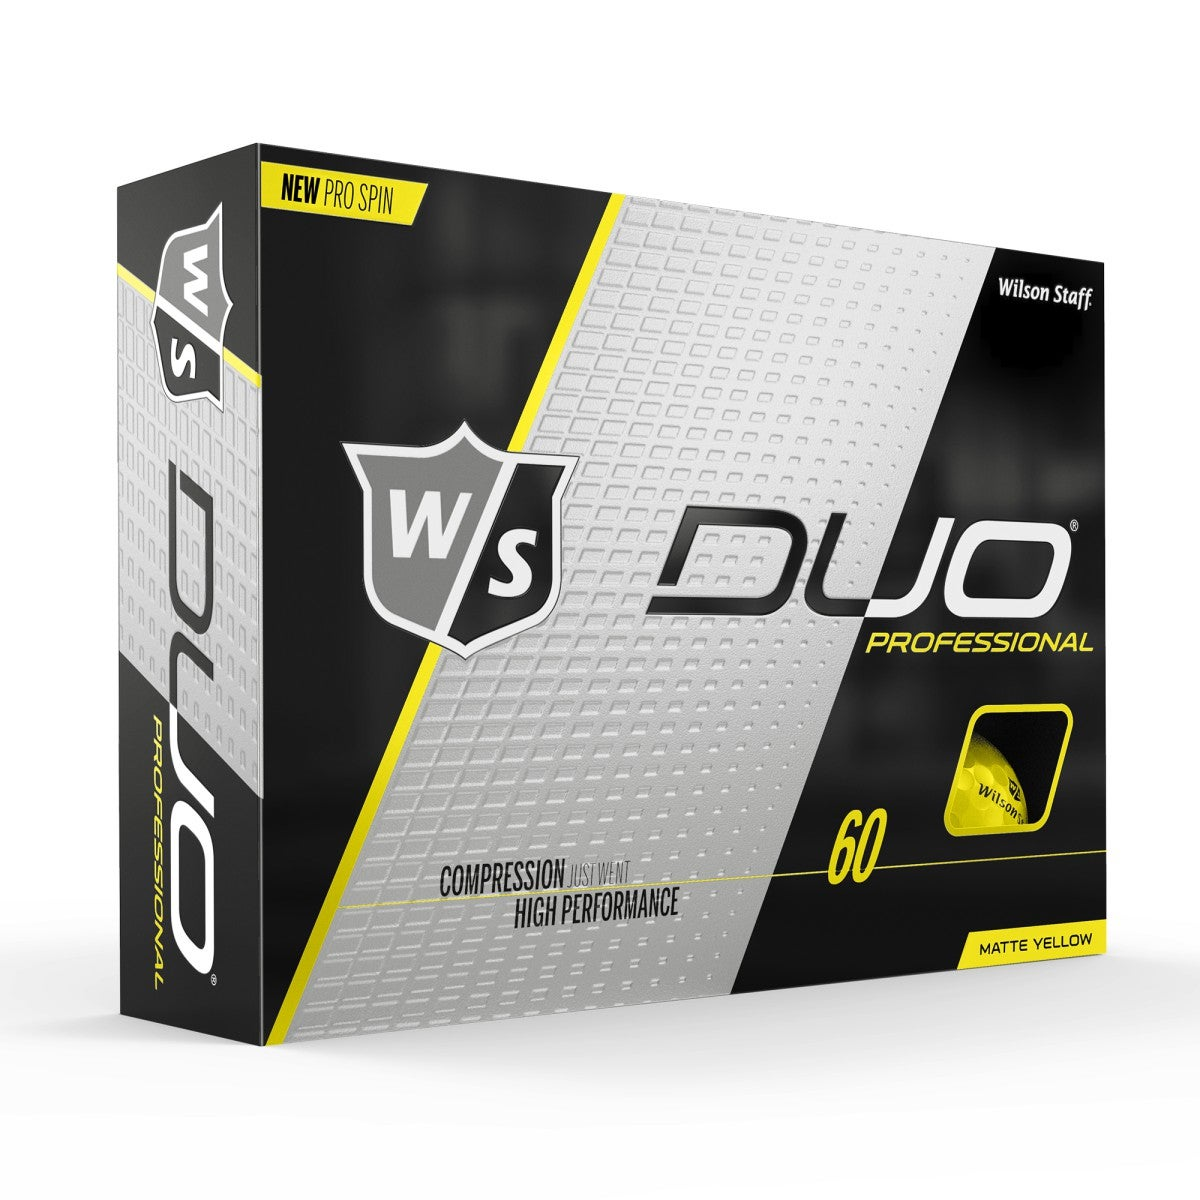 Wilson Staff Duo Pro Yellow Matte Golf Balls